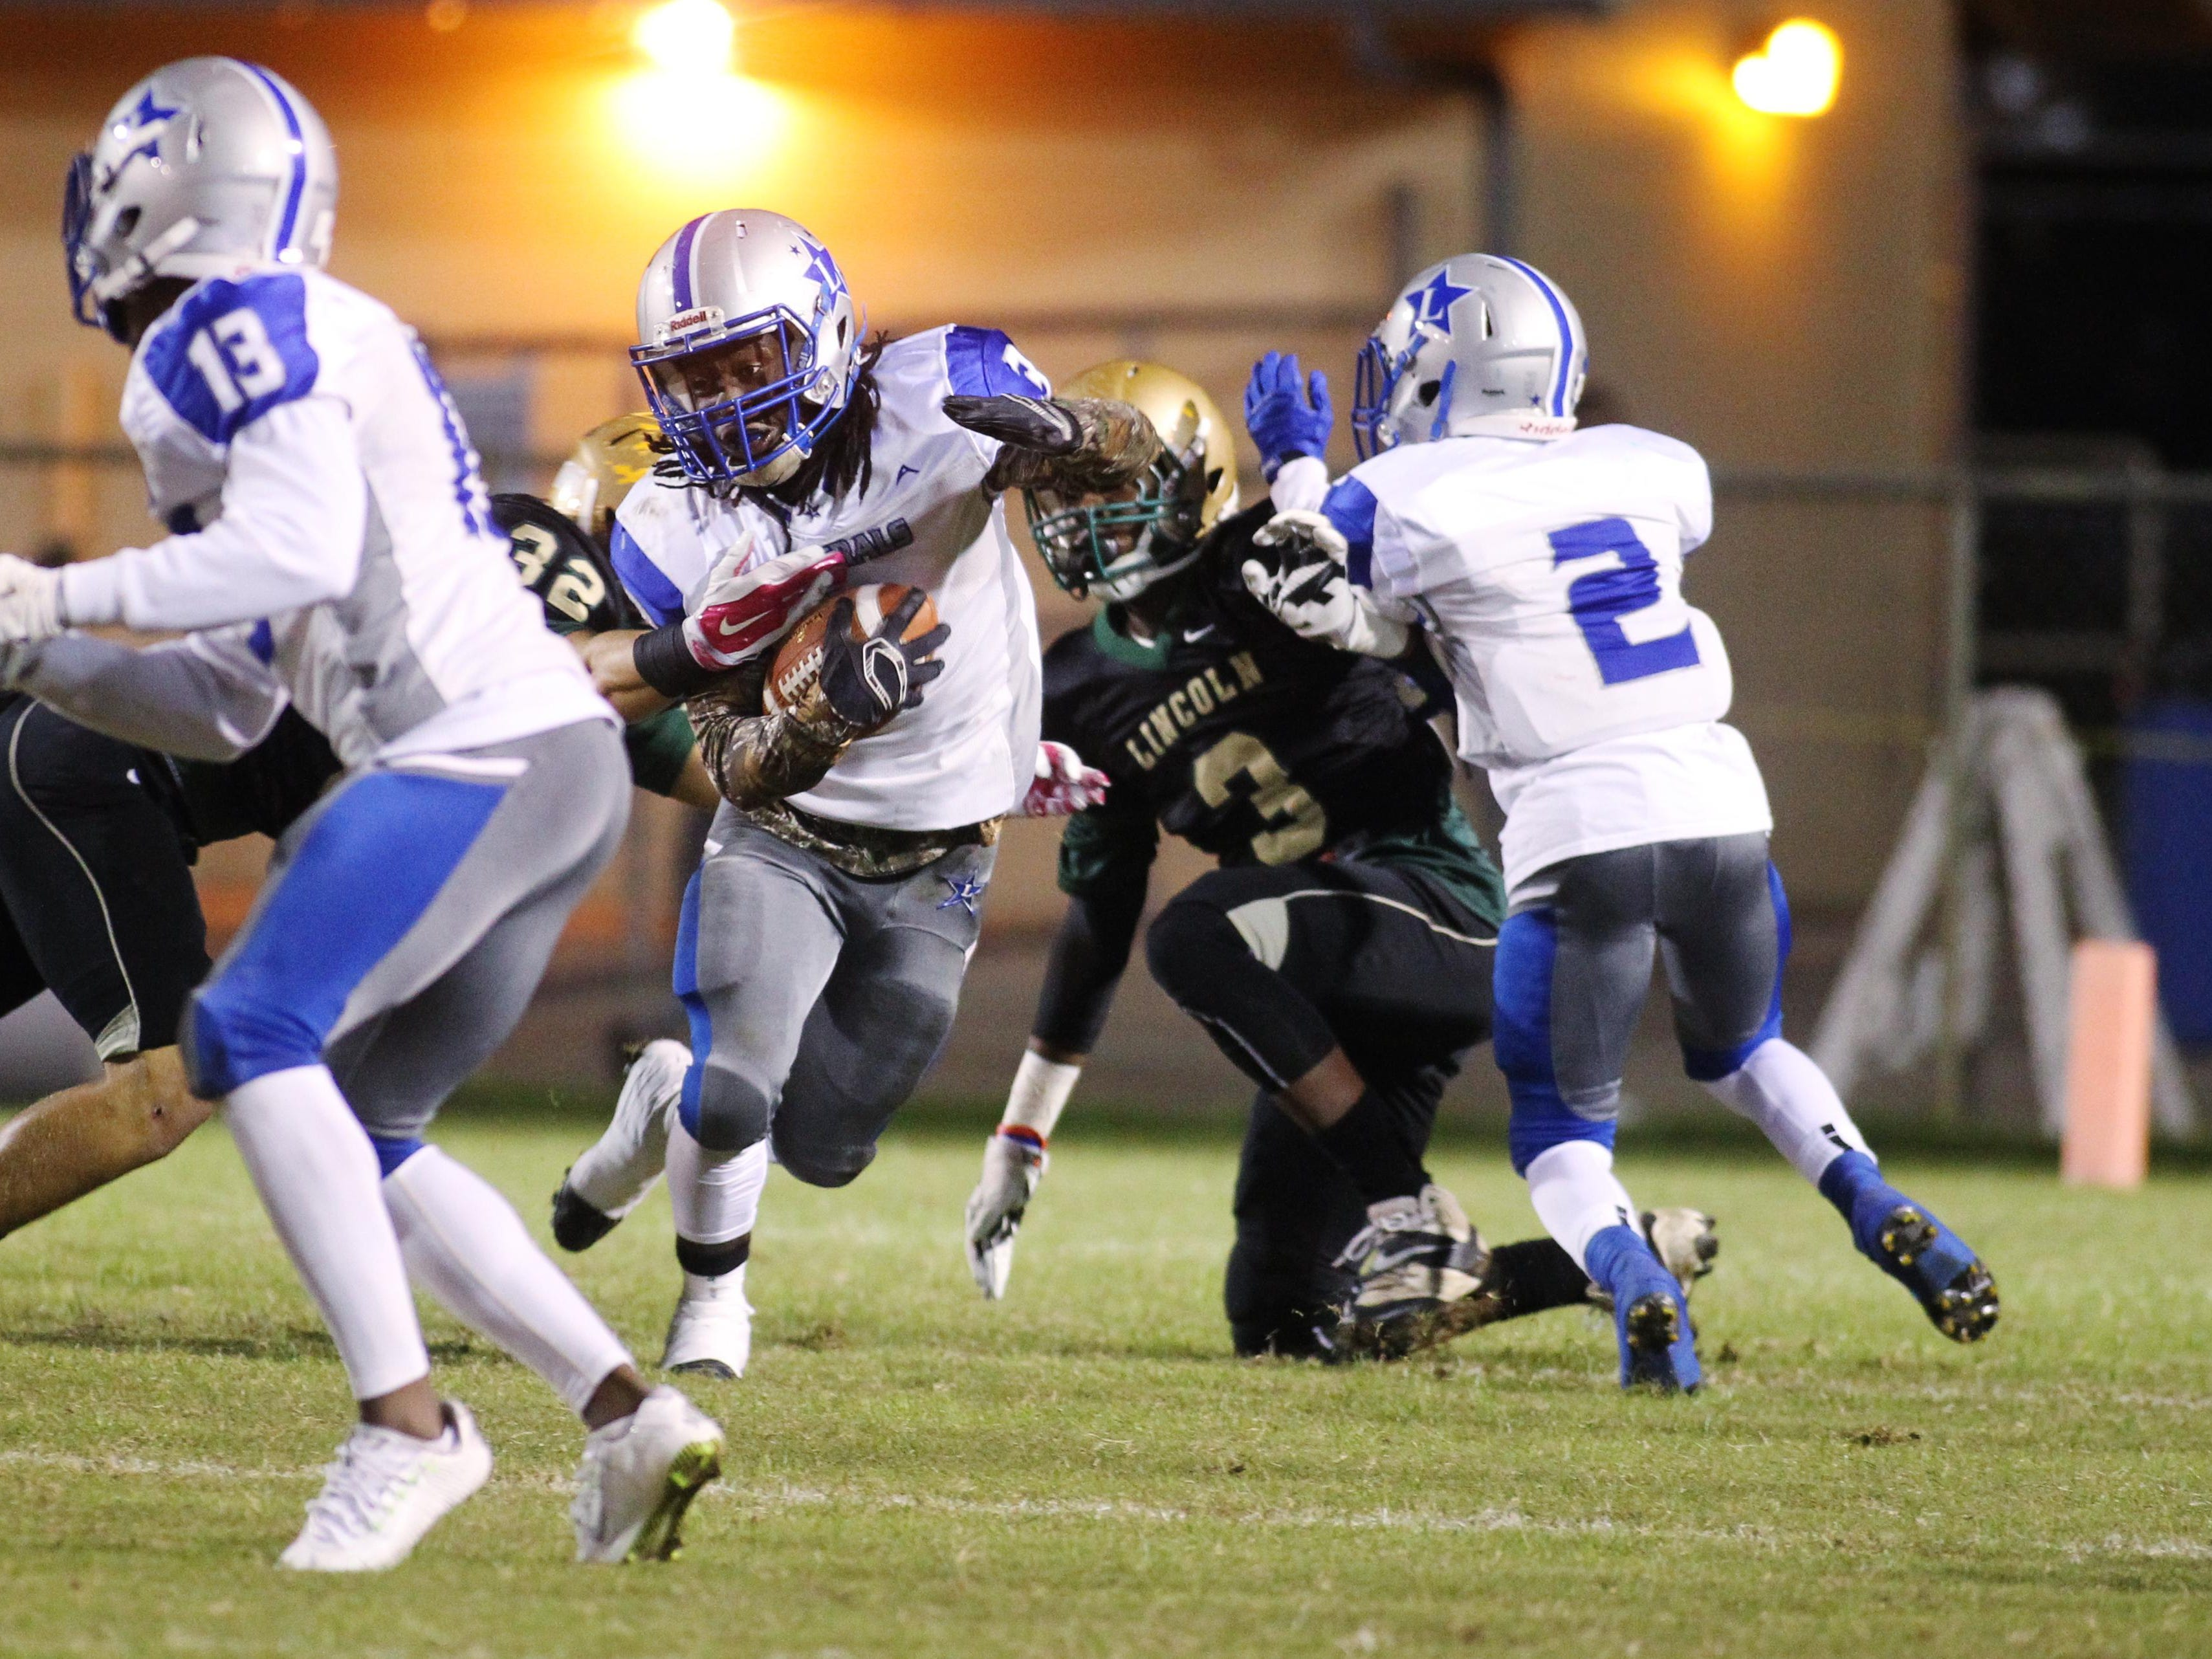 Lee's Tony Belle rushed for 176 of the Generals' 308 yards of rush offense, but Lincoln forced an overtime stop in overtime, leading to a 44-41 in the first round of the Class 7A playoffs.